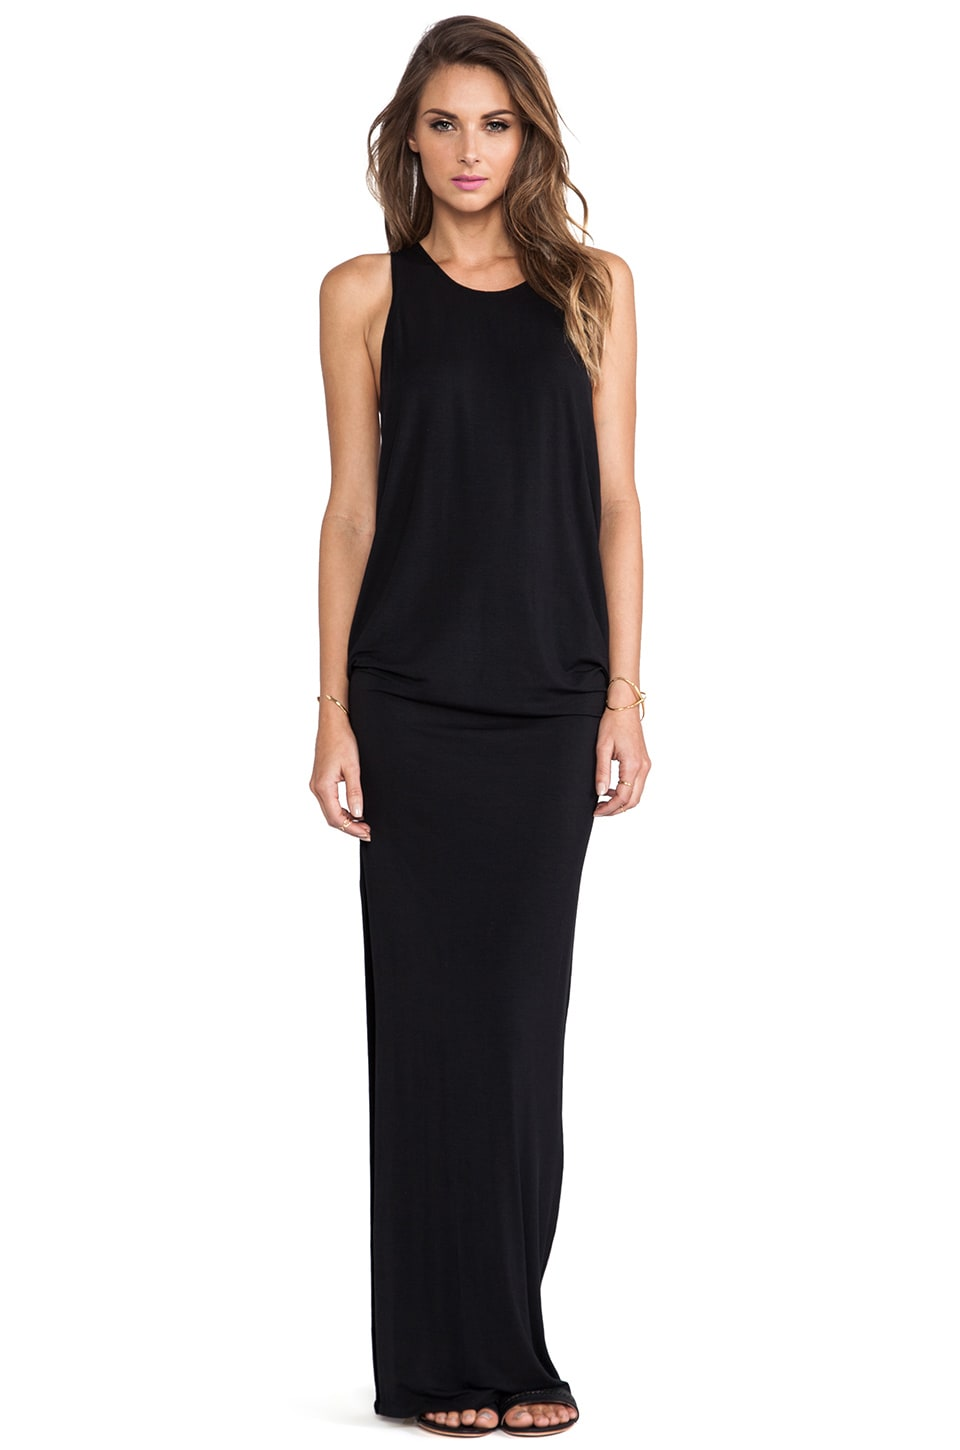 MIKOH Swimwear Mavericks High Neck Maxi Dress in Night